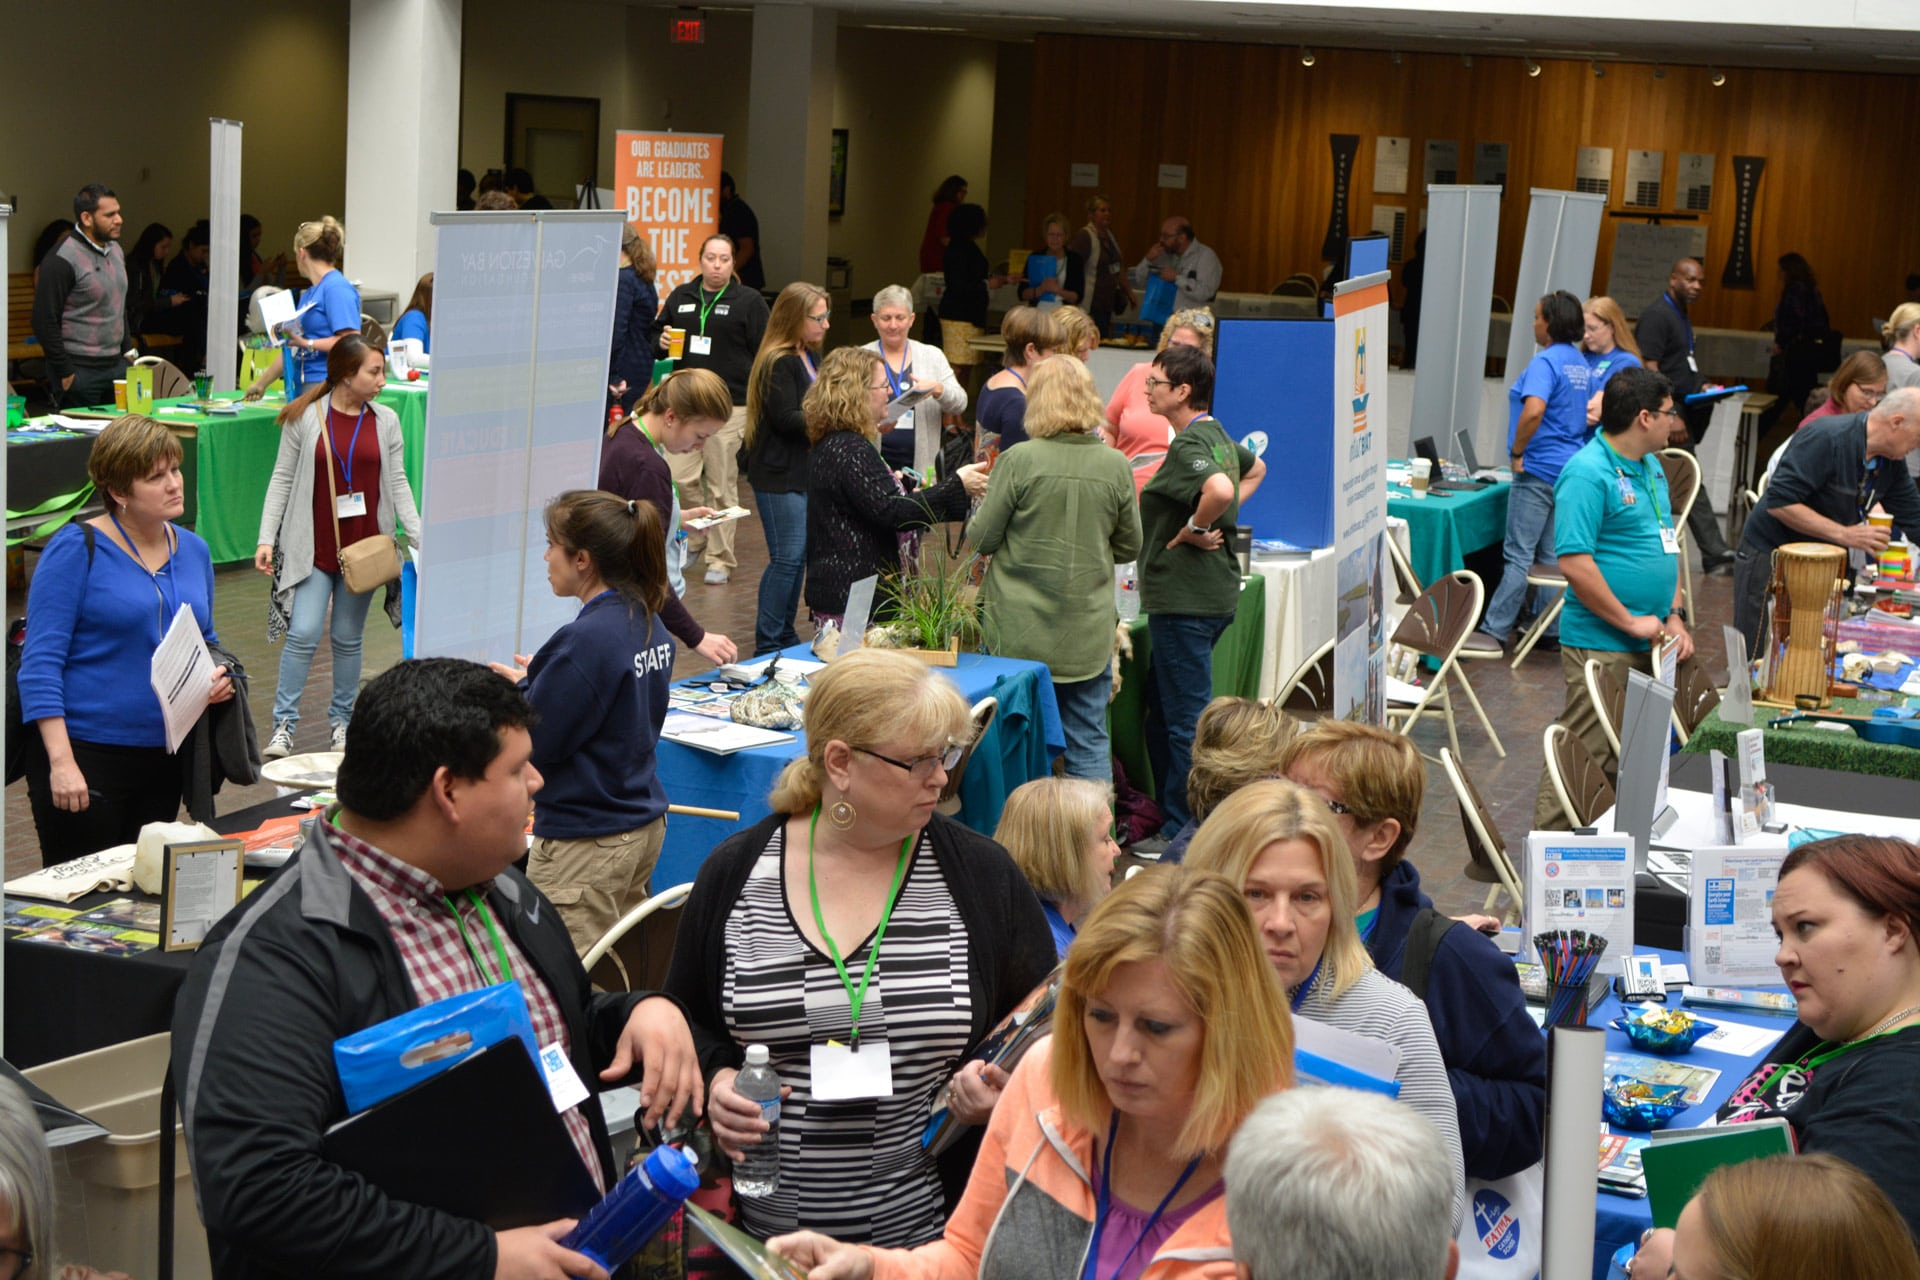 Area educators flock to second annual STEM education conference